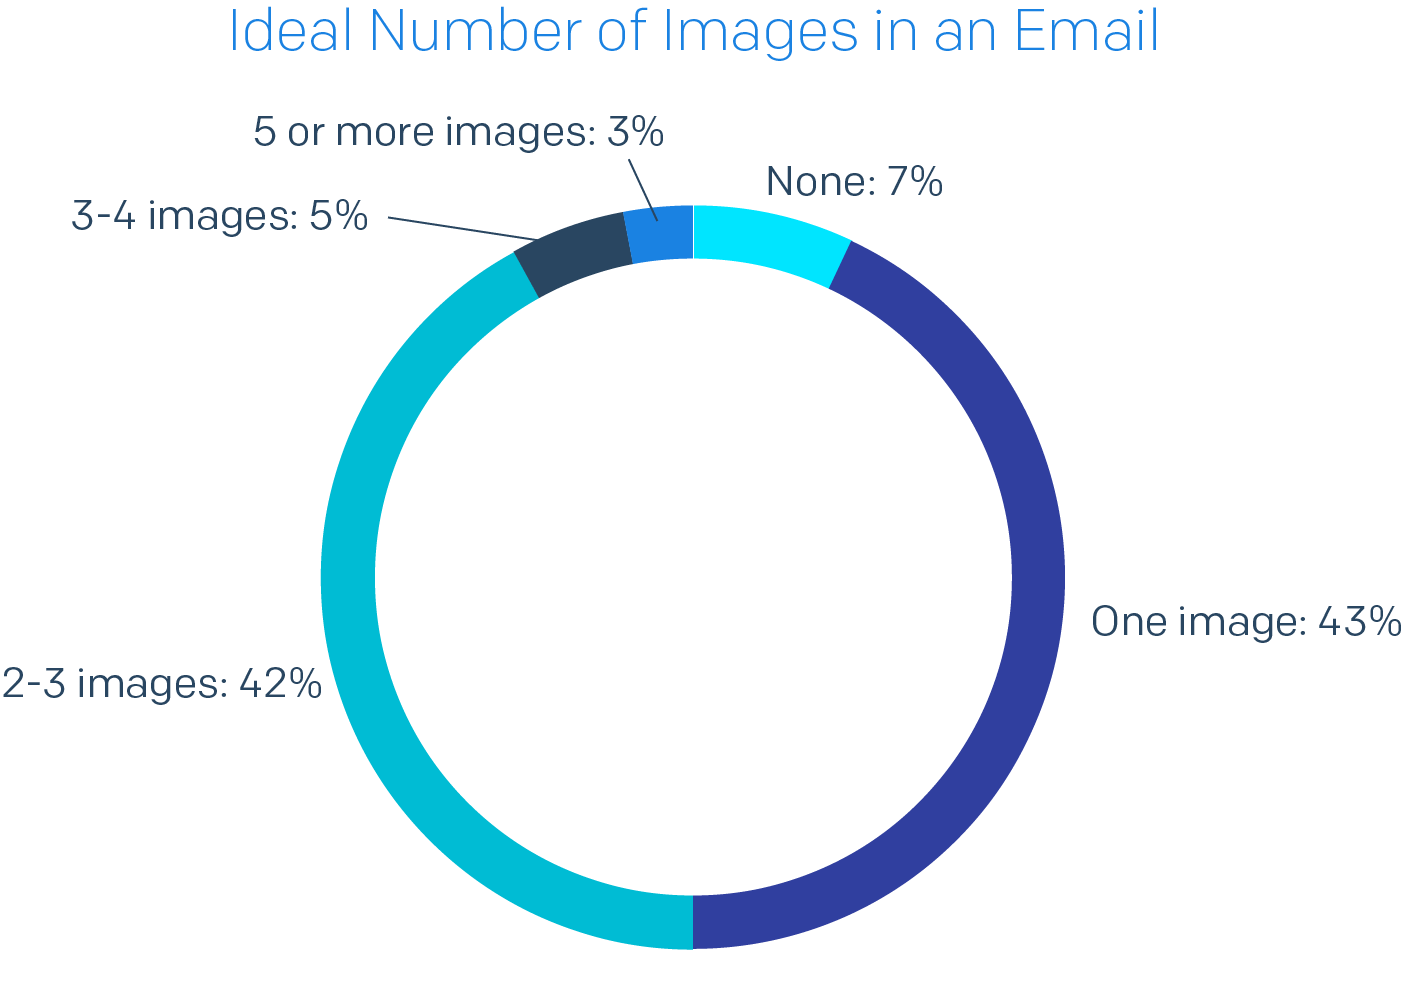 Pie chart of Ideal Number of Images in an Email